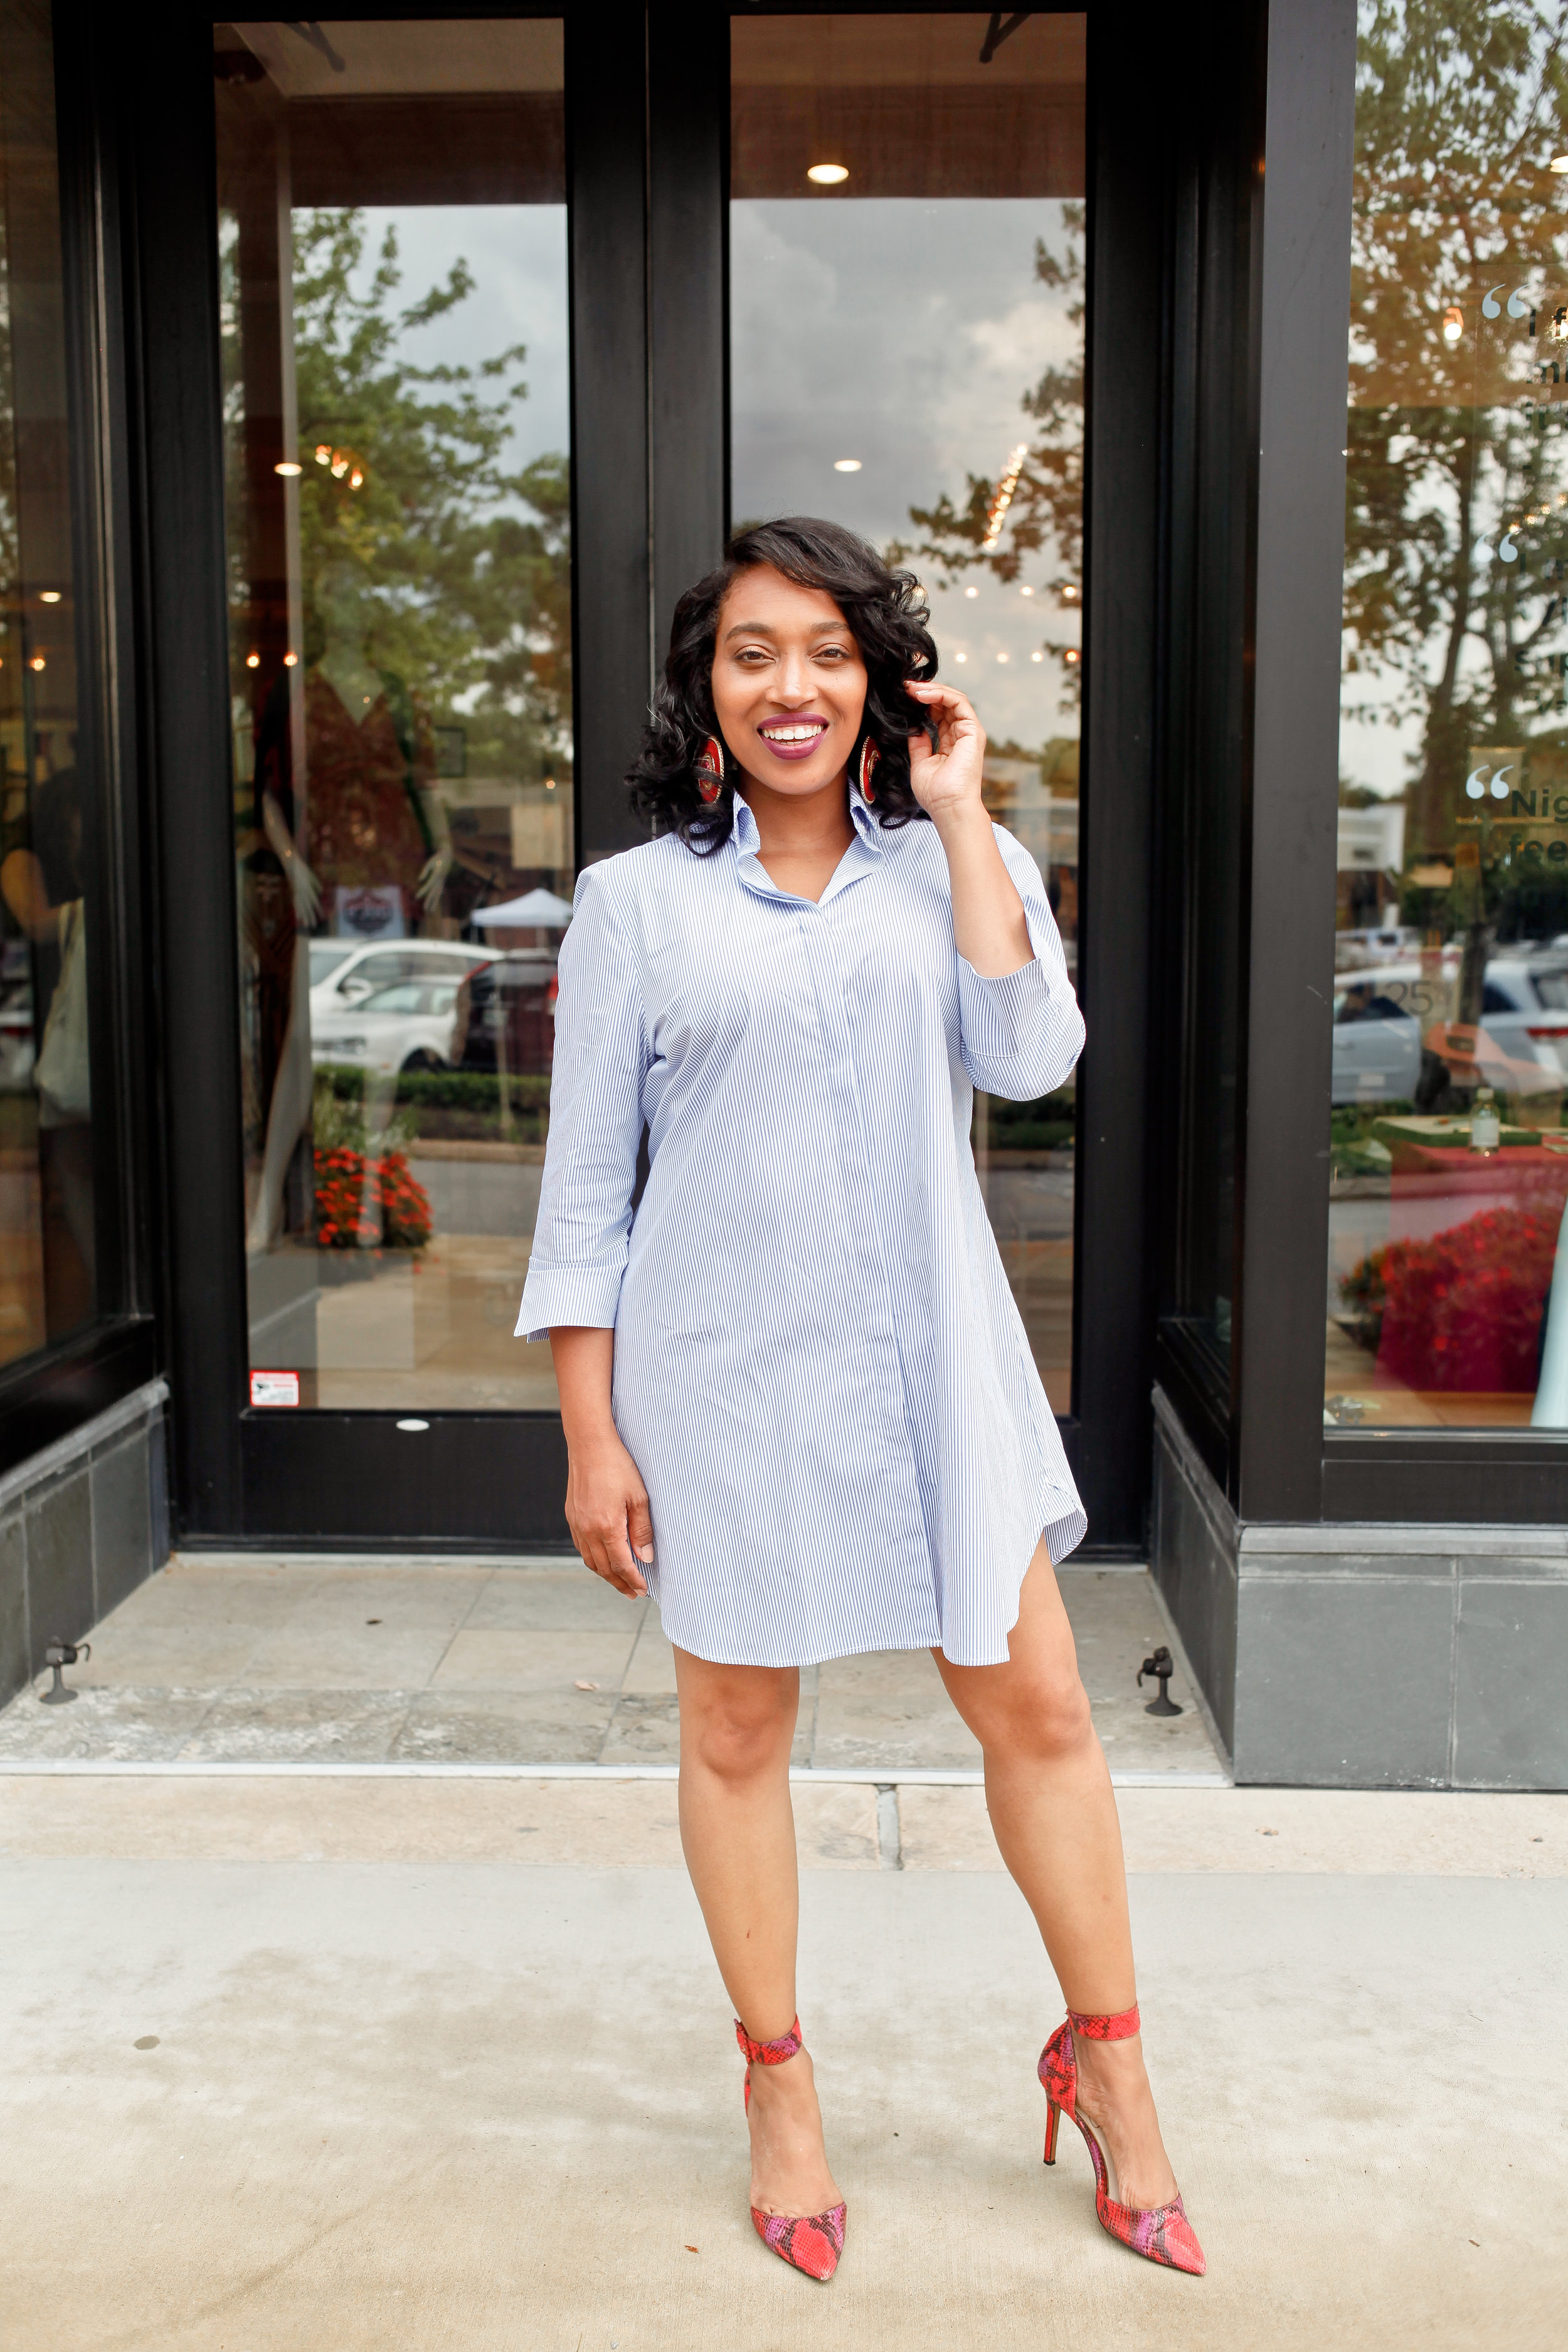 Andrea Fenise Memphis Fashion Blogger shares tips for styling a shirt dress for the postpartum body